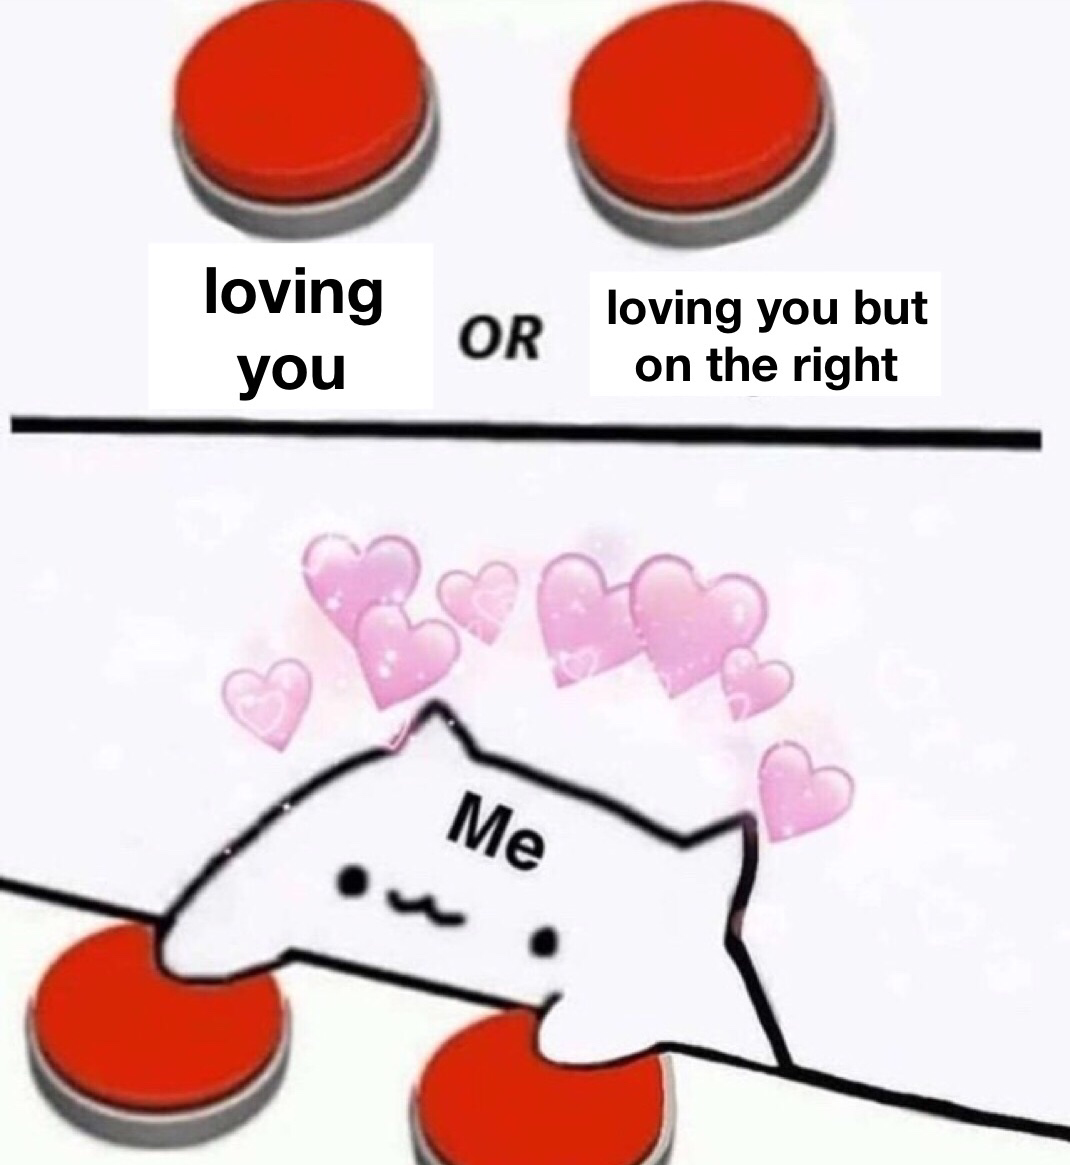 I Love You And Support You R Wholesomememes Wholesome Memes Know Your Meme